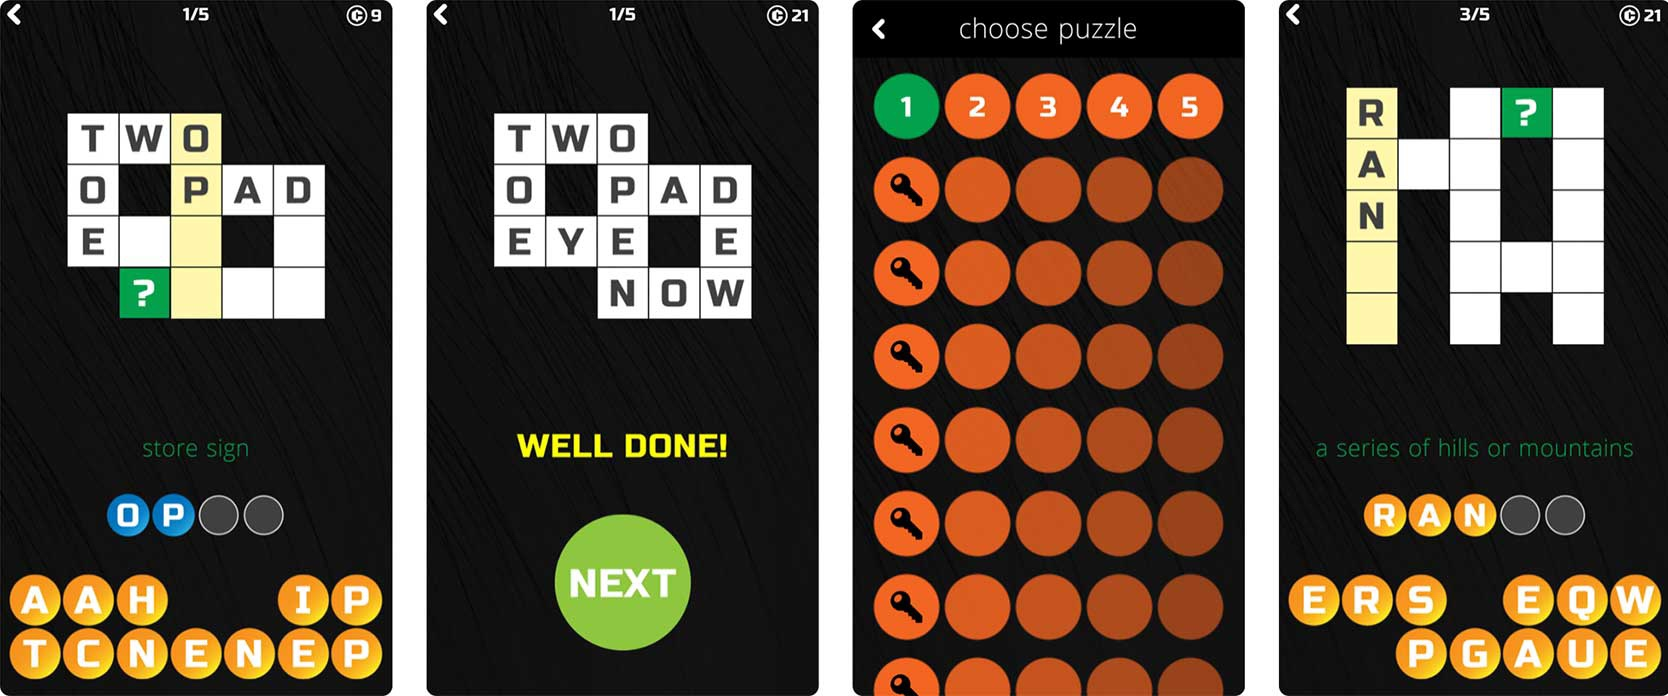 Screenshot of Little Crossword Puzzle game